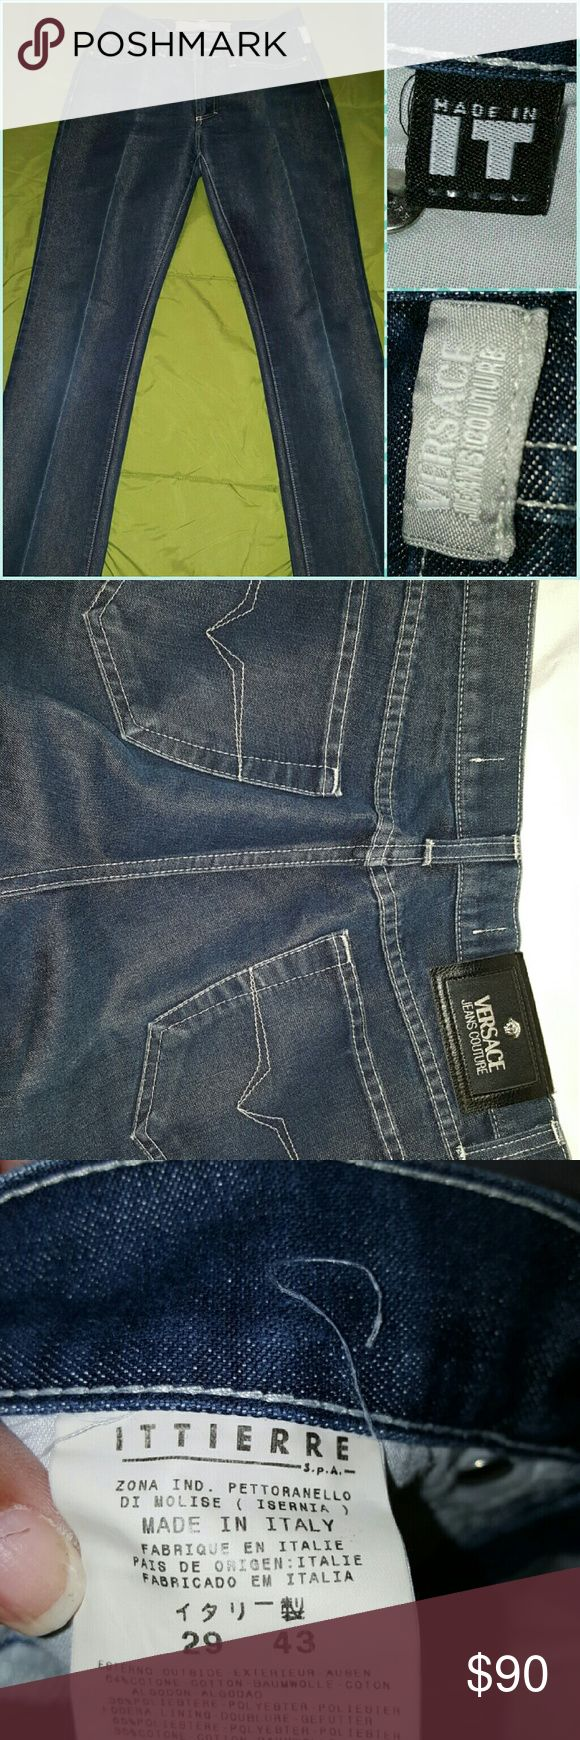 Marked 11% off ♨ ♨ Authentic Versace Jeans Couture 100% Authentic Versace Jeans Couture jeans! In great condition.   Fantastic designer denim in a dark wash straight leg. Signature Versace Medusa logo rivets, buttons, and back patch.  Pictures are worth a thousand words, So we have included thousands of words in pictures for you to view.   Inseam 30 Made in Italy  What you see ~ is what you get.  Pictures are of the actual item.   Zoom in for detail.  Please review pictures before buying…